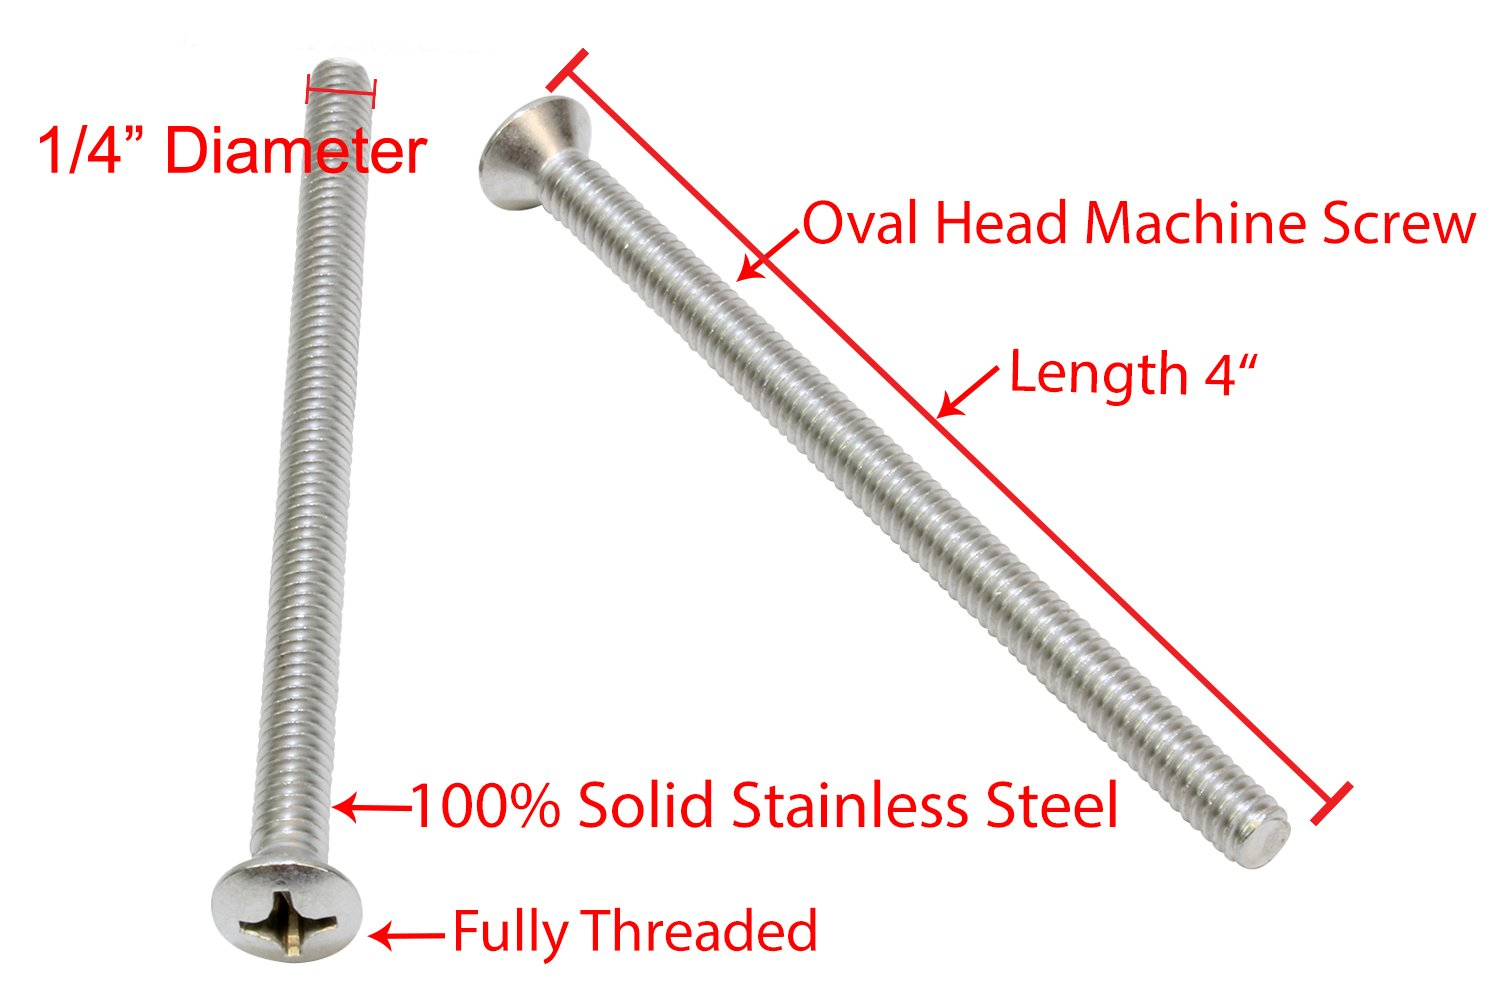 18-8 1//4-20 X 1 Stainless Phillips Oval Head Machine Screw, Stainless Steel by Bolt Dropper 25 pc 304